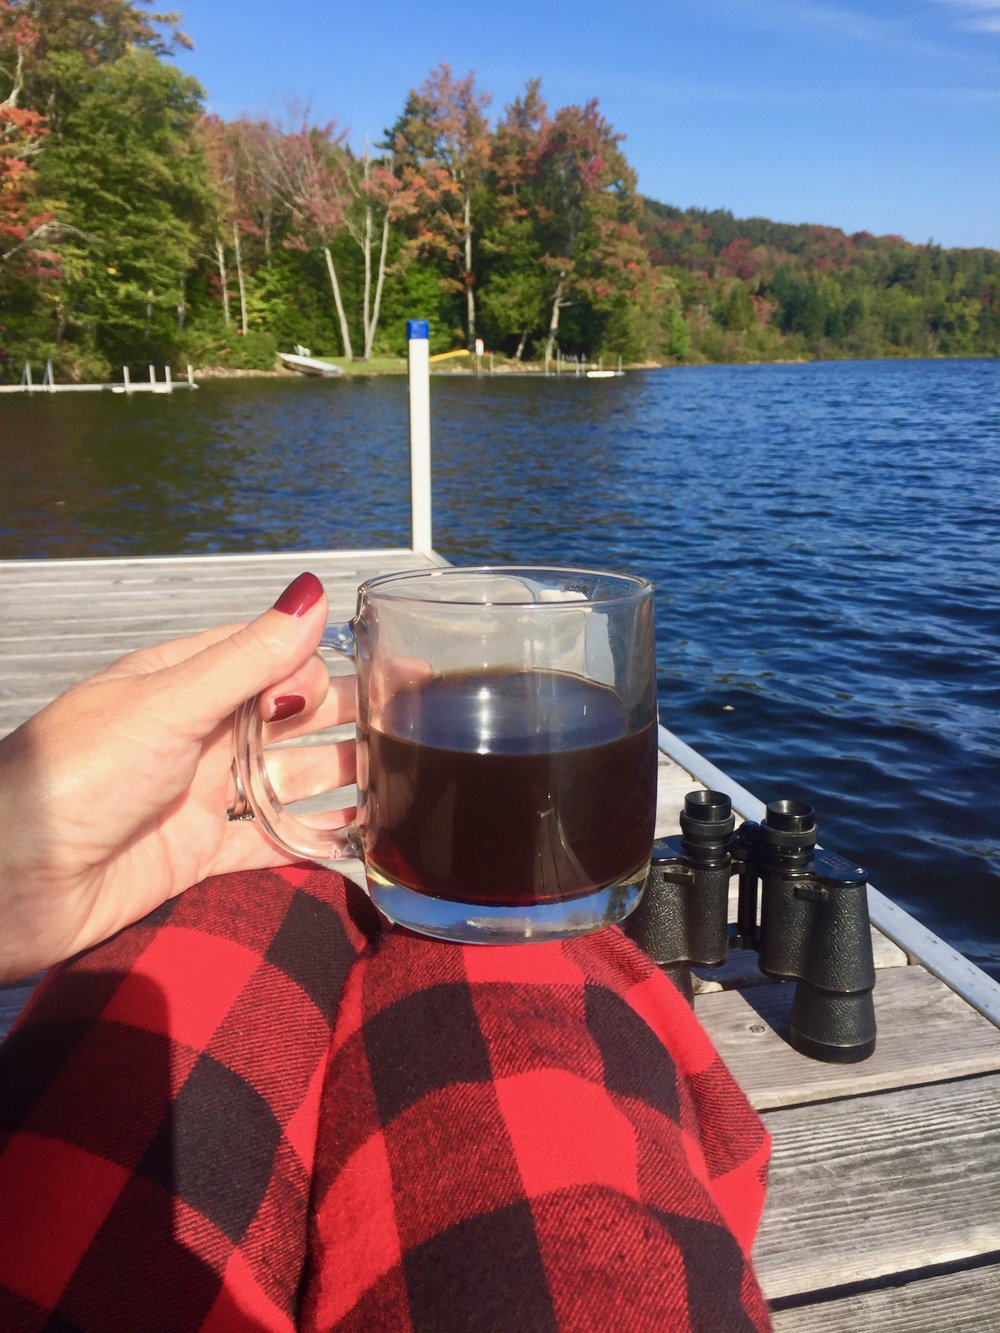 "Whenever we are at our getaway cabin in the mountains of Maine, I look forward to the chilly nights so that I can wear my  Woolrich black and red buffalo check pajama pants  and black flannel top. PS, I am a shorty at 5'2"" and these are a good length on me, just breaking on the top of my feet."